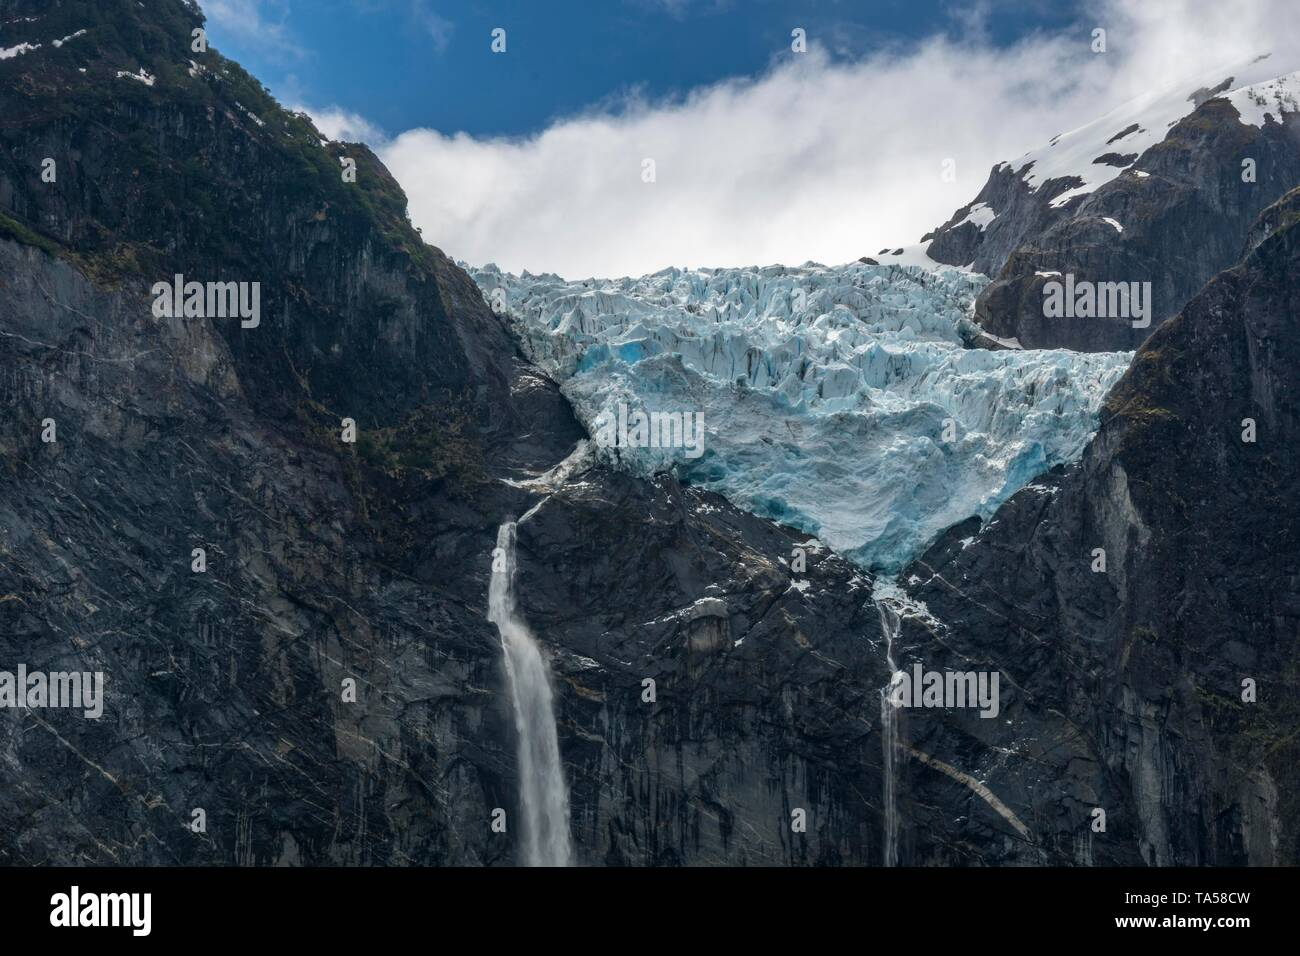 Hanging glacier Ventisquero Colgante from the vantage point at Sendero Queulat, Queulat National Park, Region de Aysen, Patagonia, Chile - Stock Image